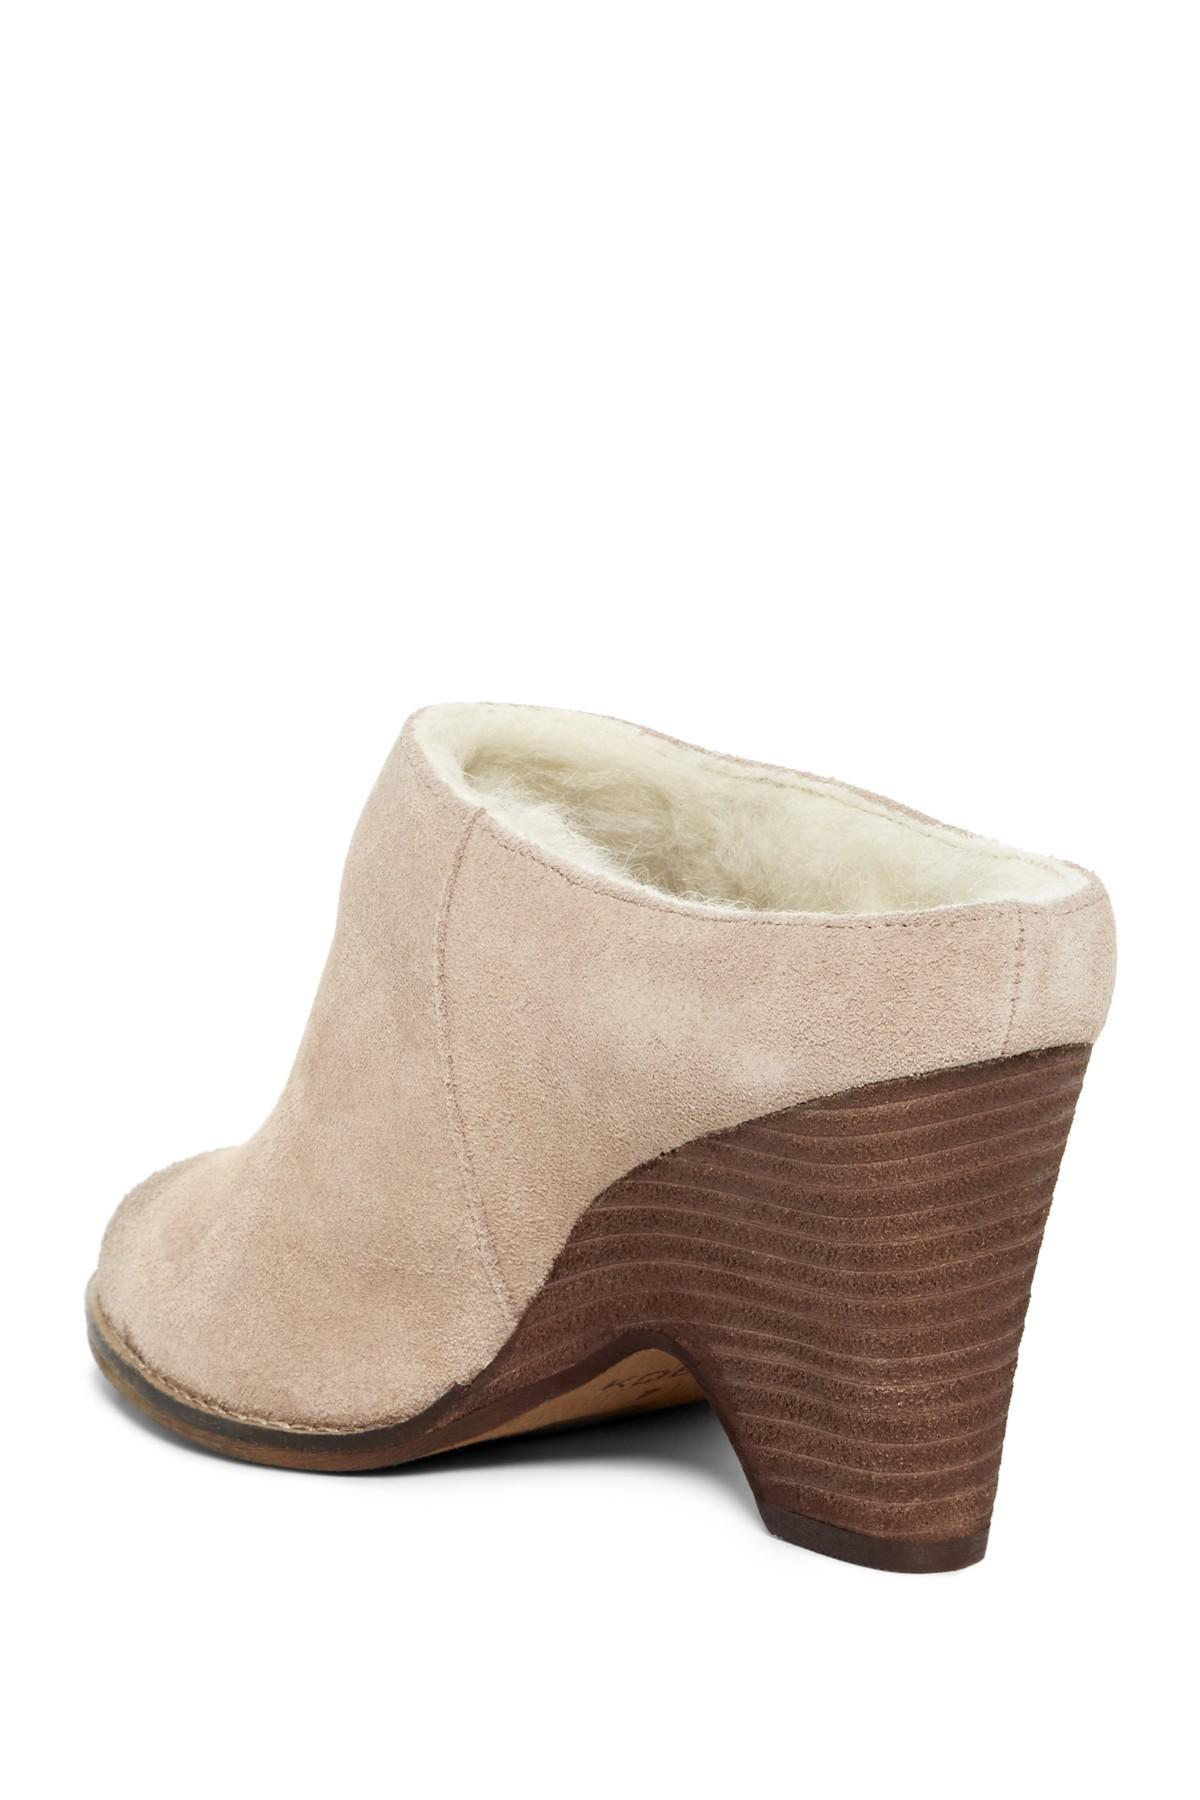 Kelsi Dagger Brooklyn Hocking Faux Sherling Lined Suede Mule rxfm3